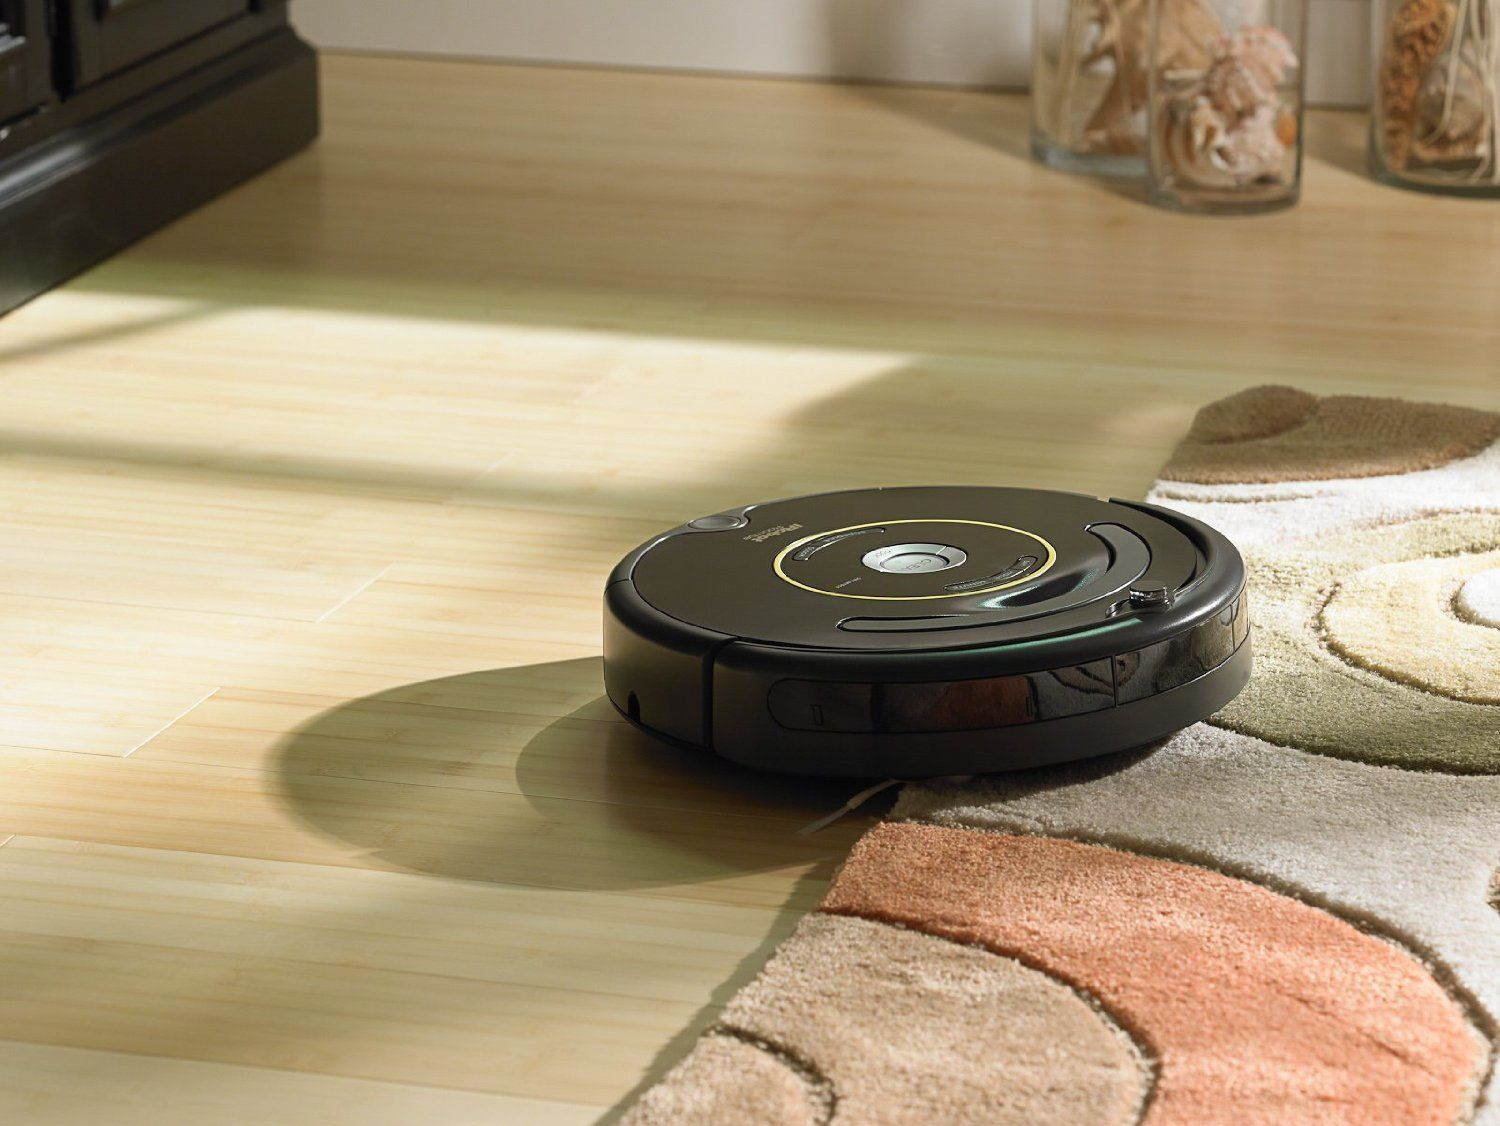 A Roomba that vacuums and brushes your floors. Roomba